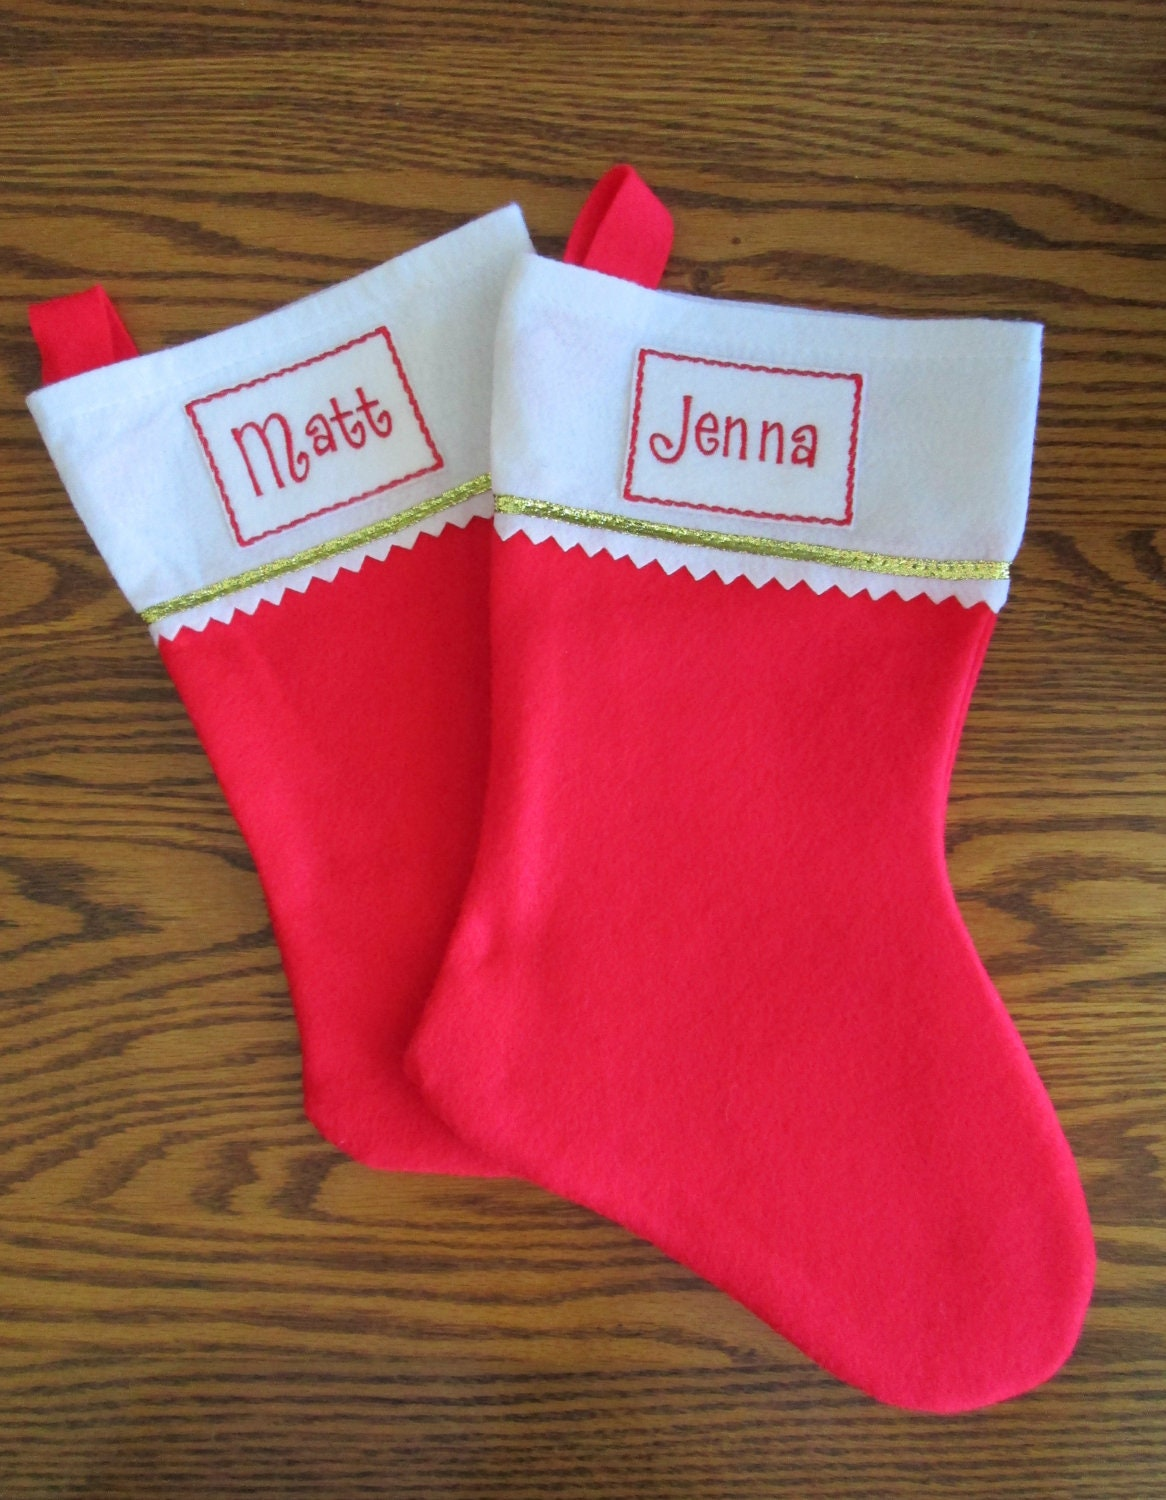 embroidered iron on name label for christmas stockings